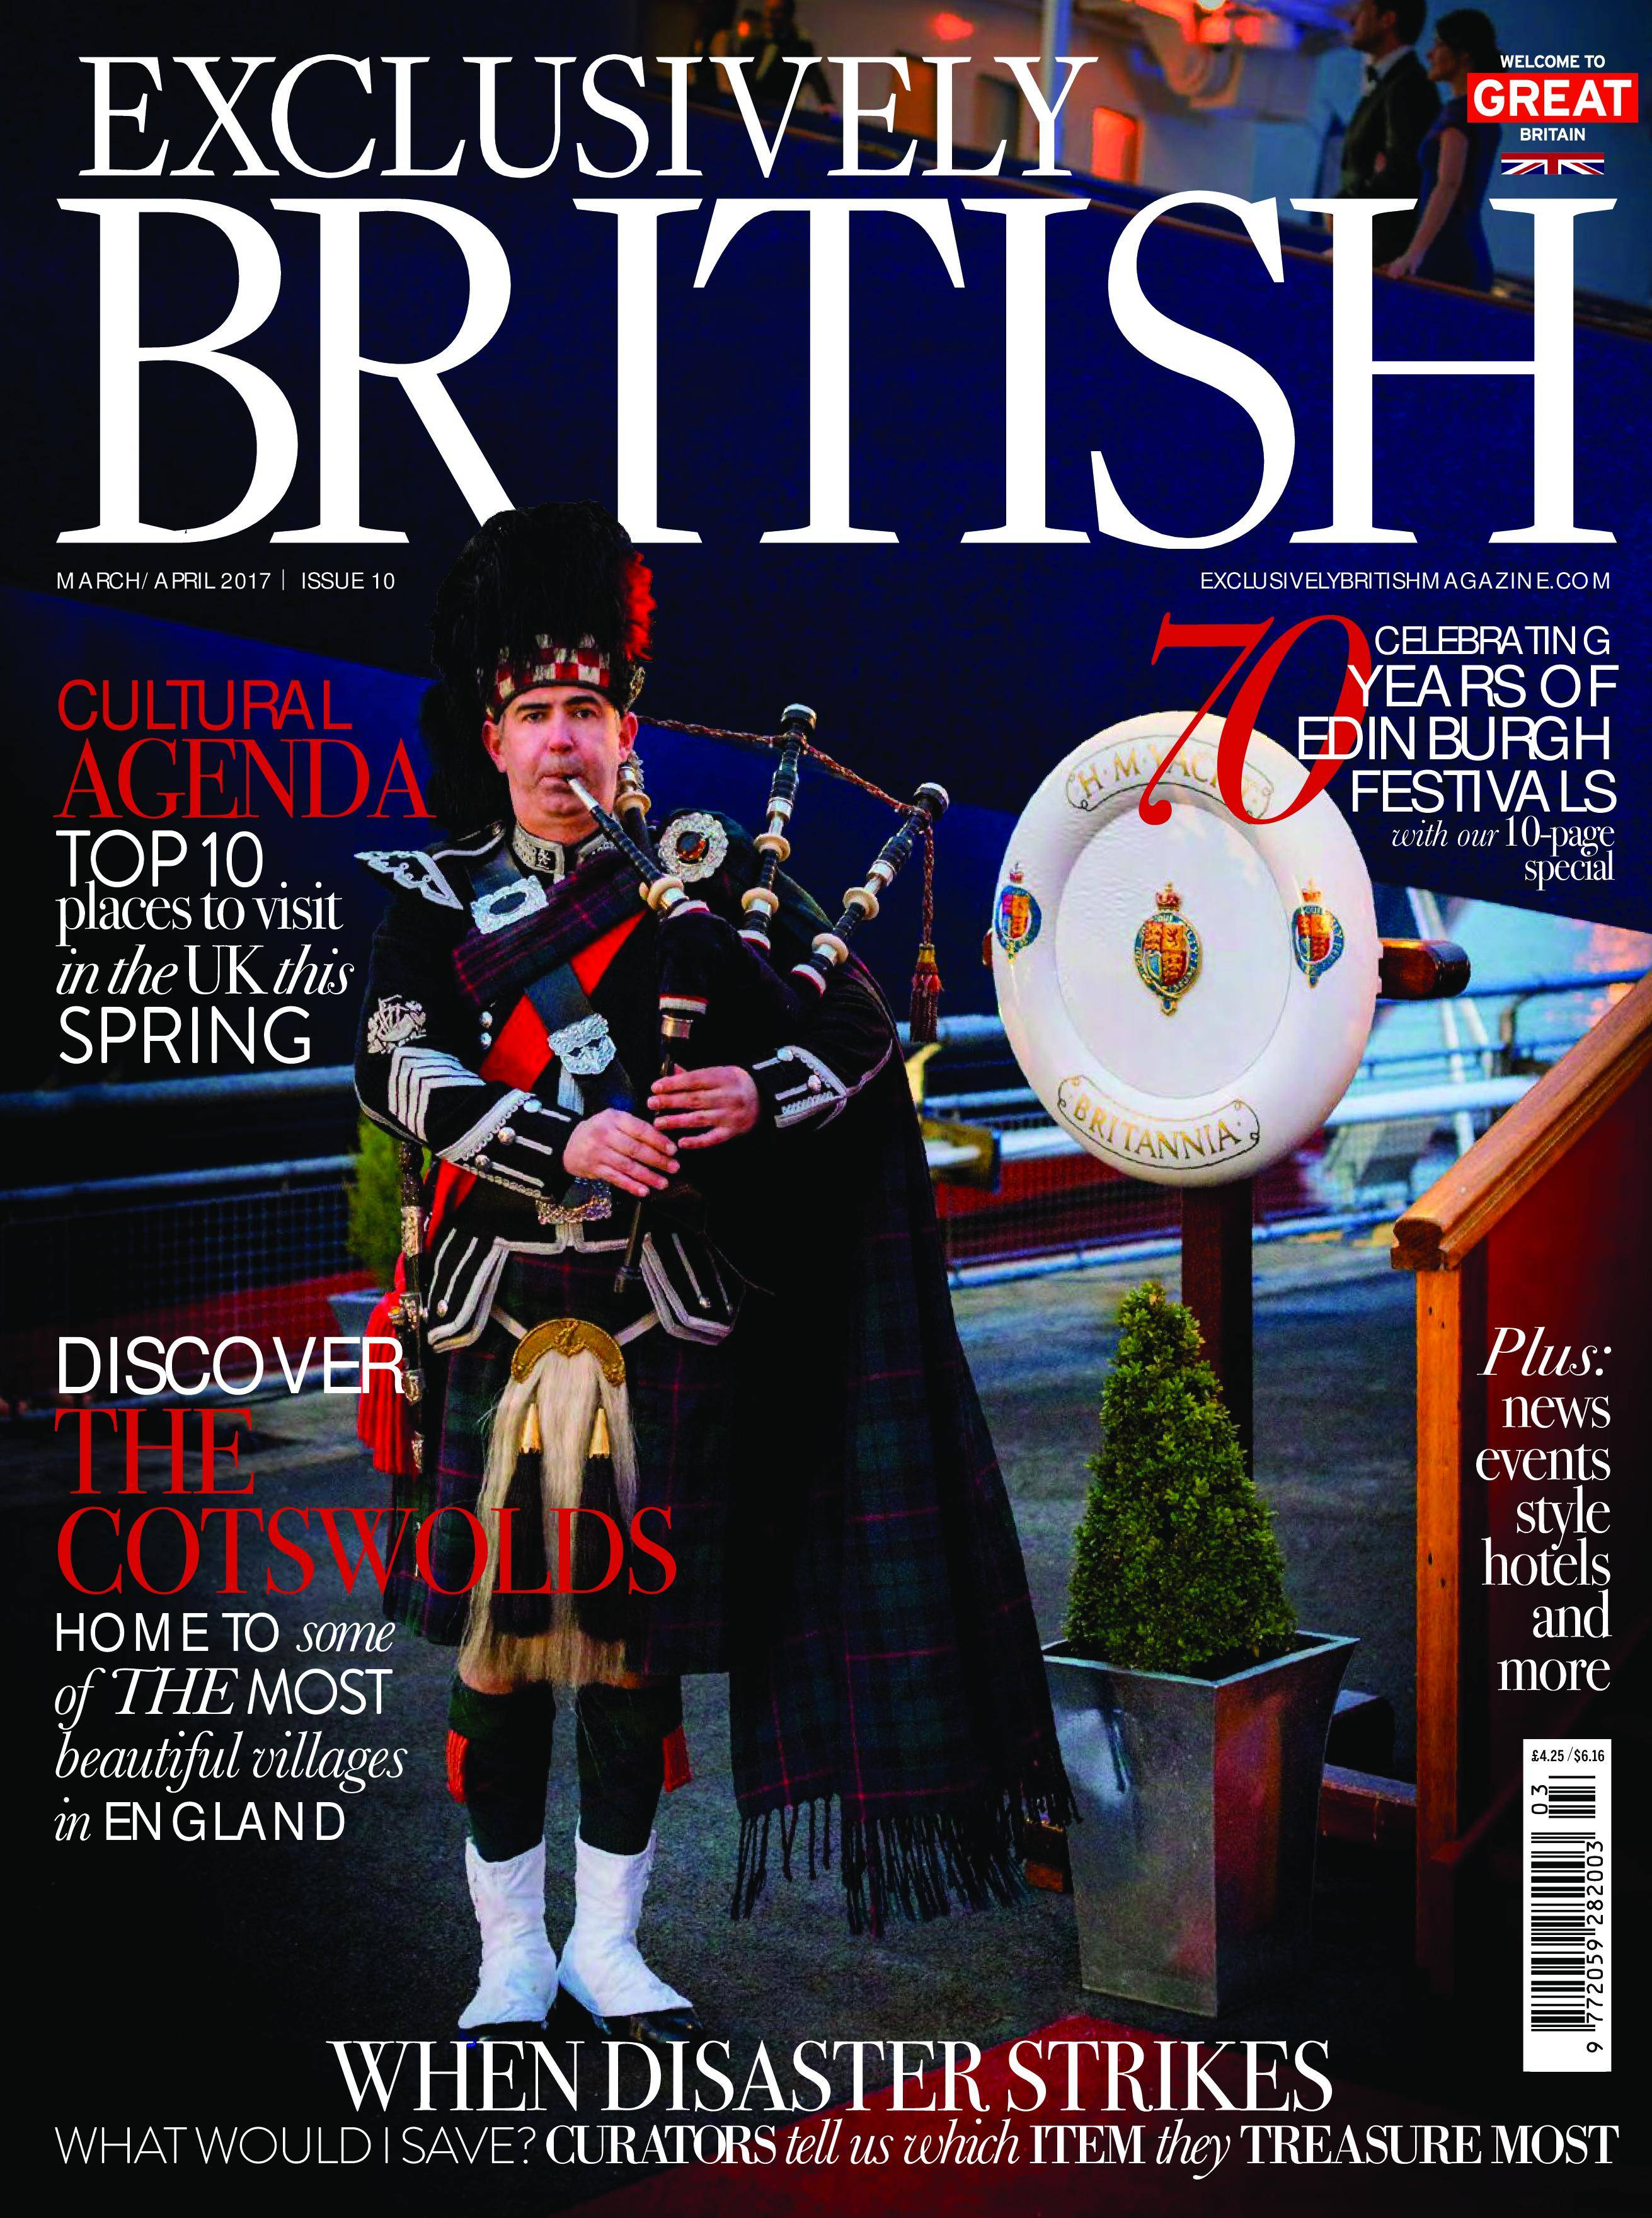 Exclusively British - March/April 2017